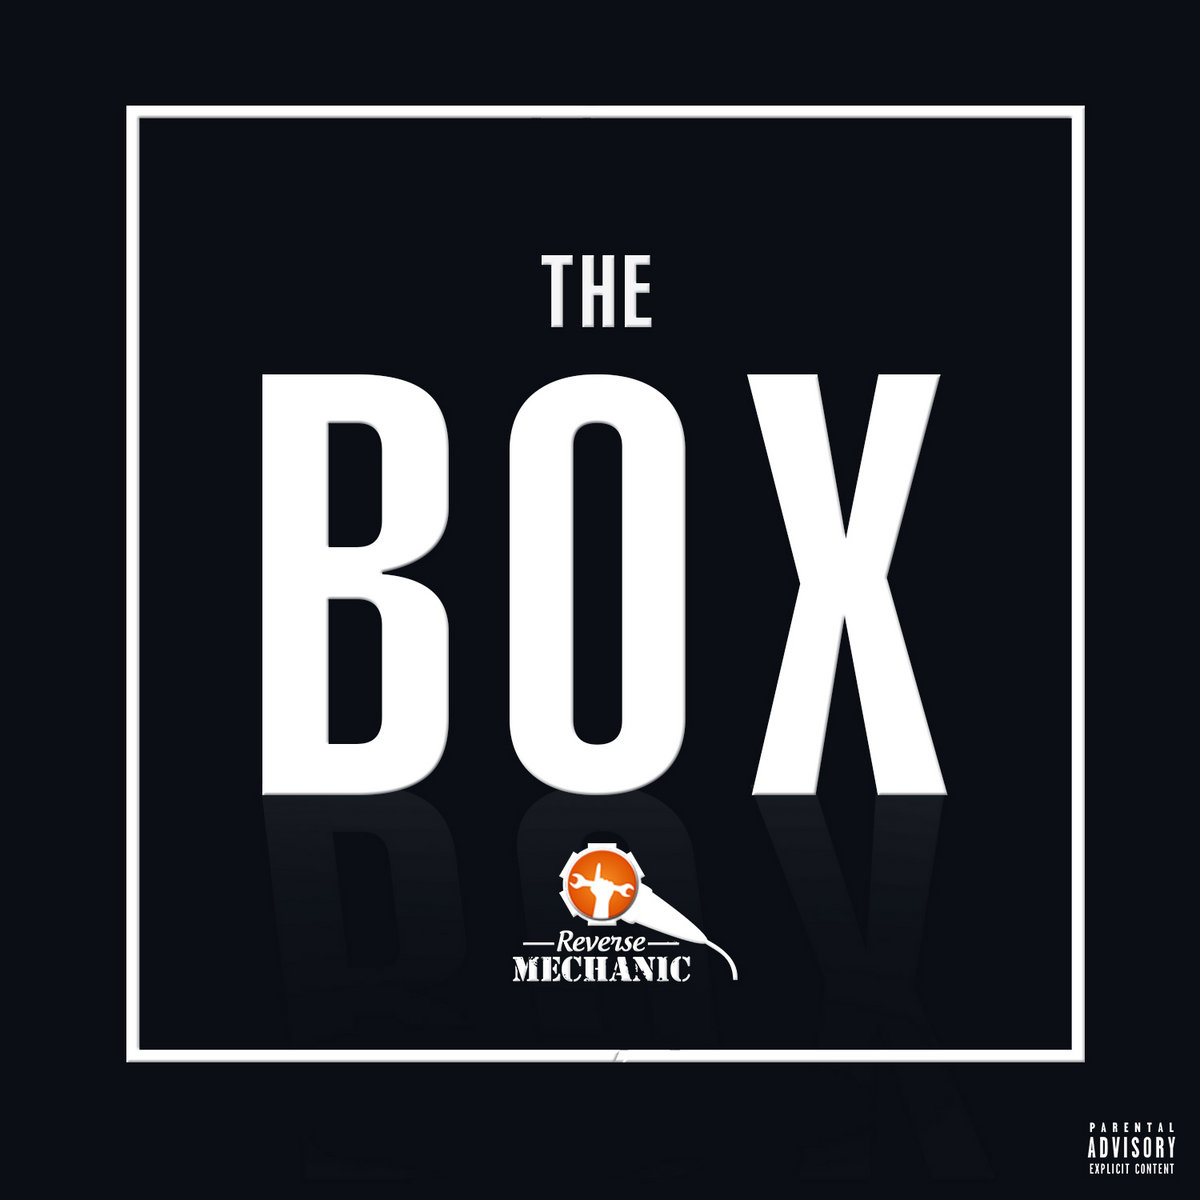 The Box by Reverse Mechanic